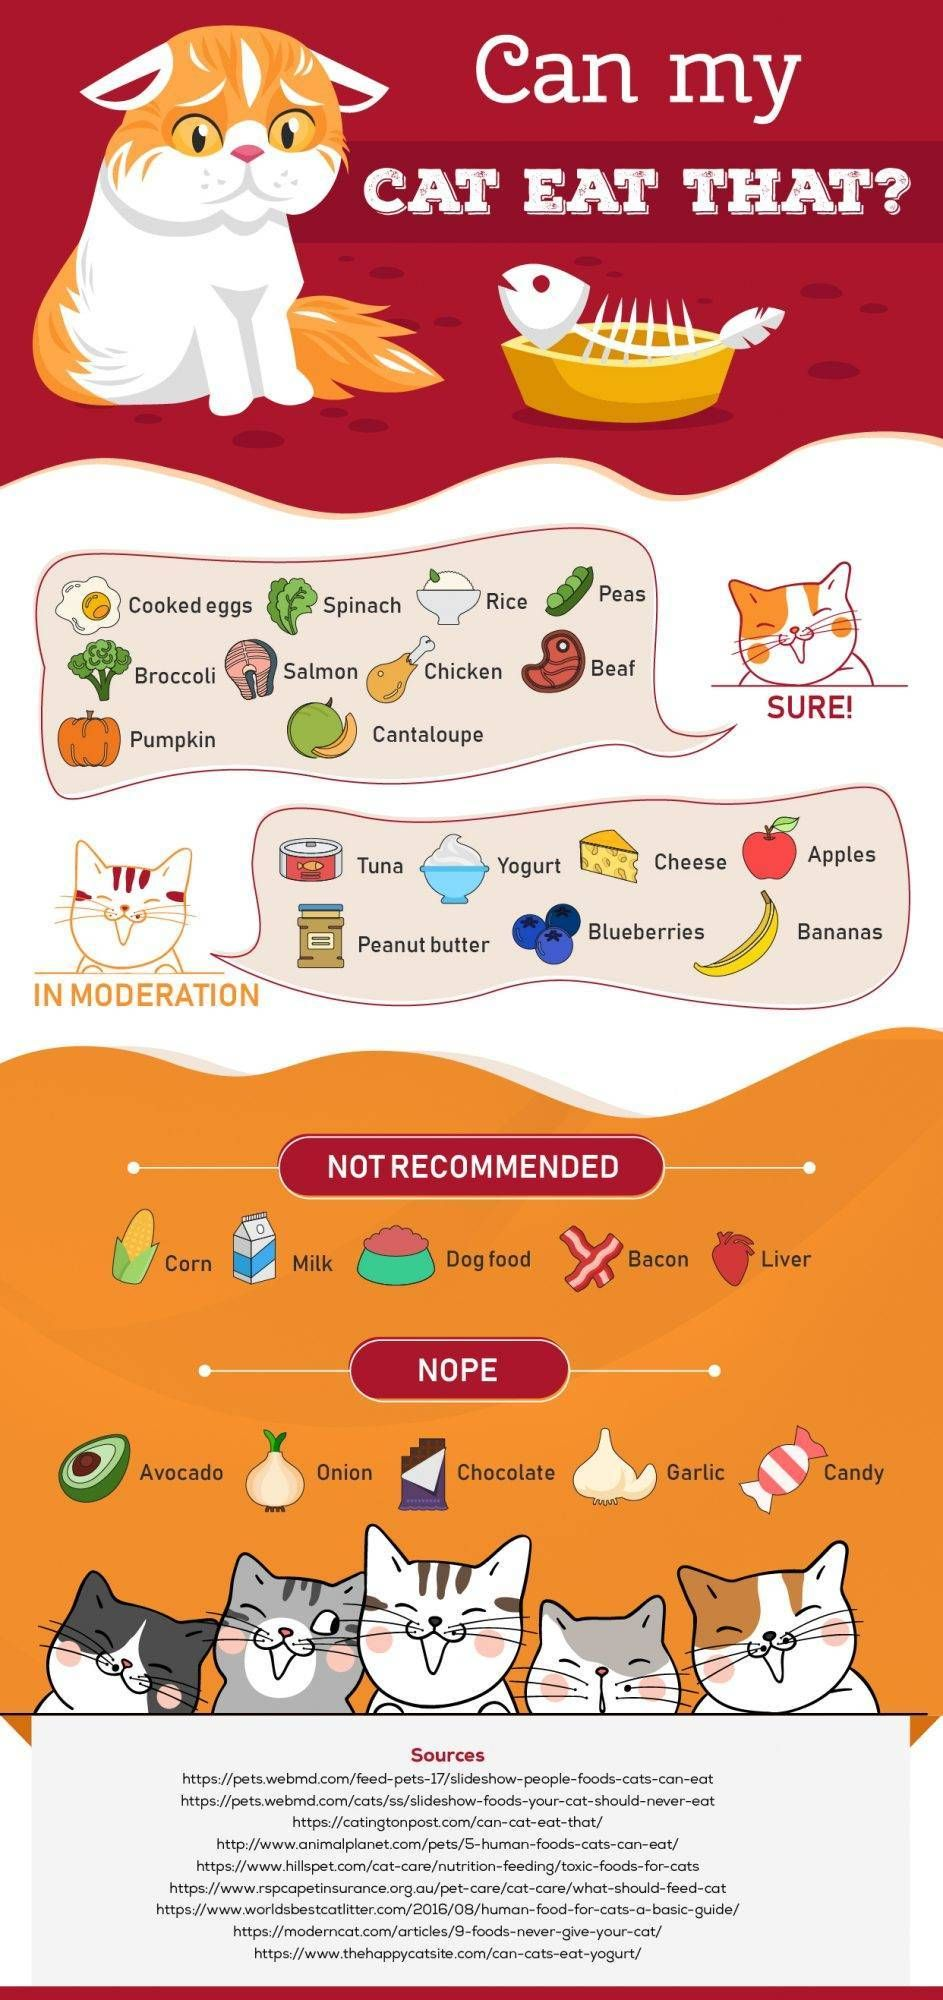 Infographic Which Human Foods Can My Cat Eat Katzenworld Human Food For Cats Foods Cats Can Eat Dry Cat Food